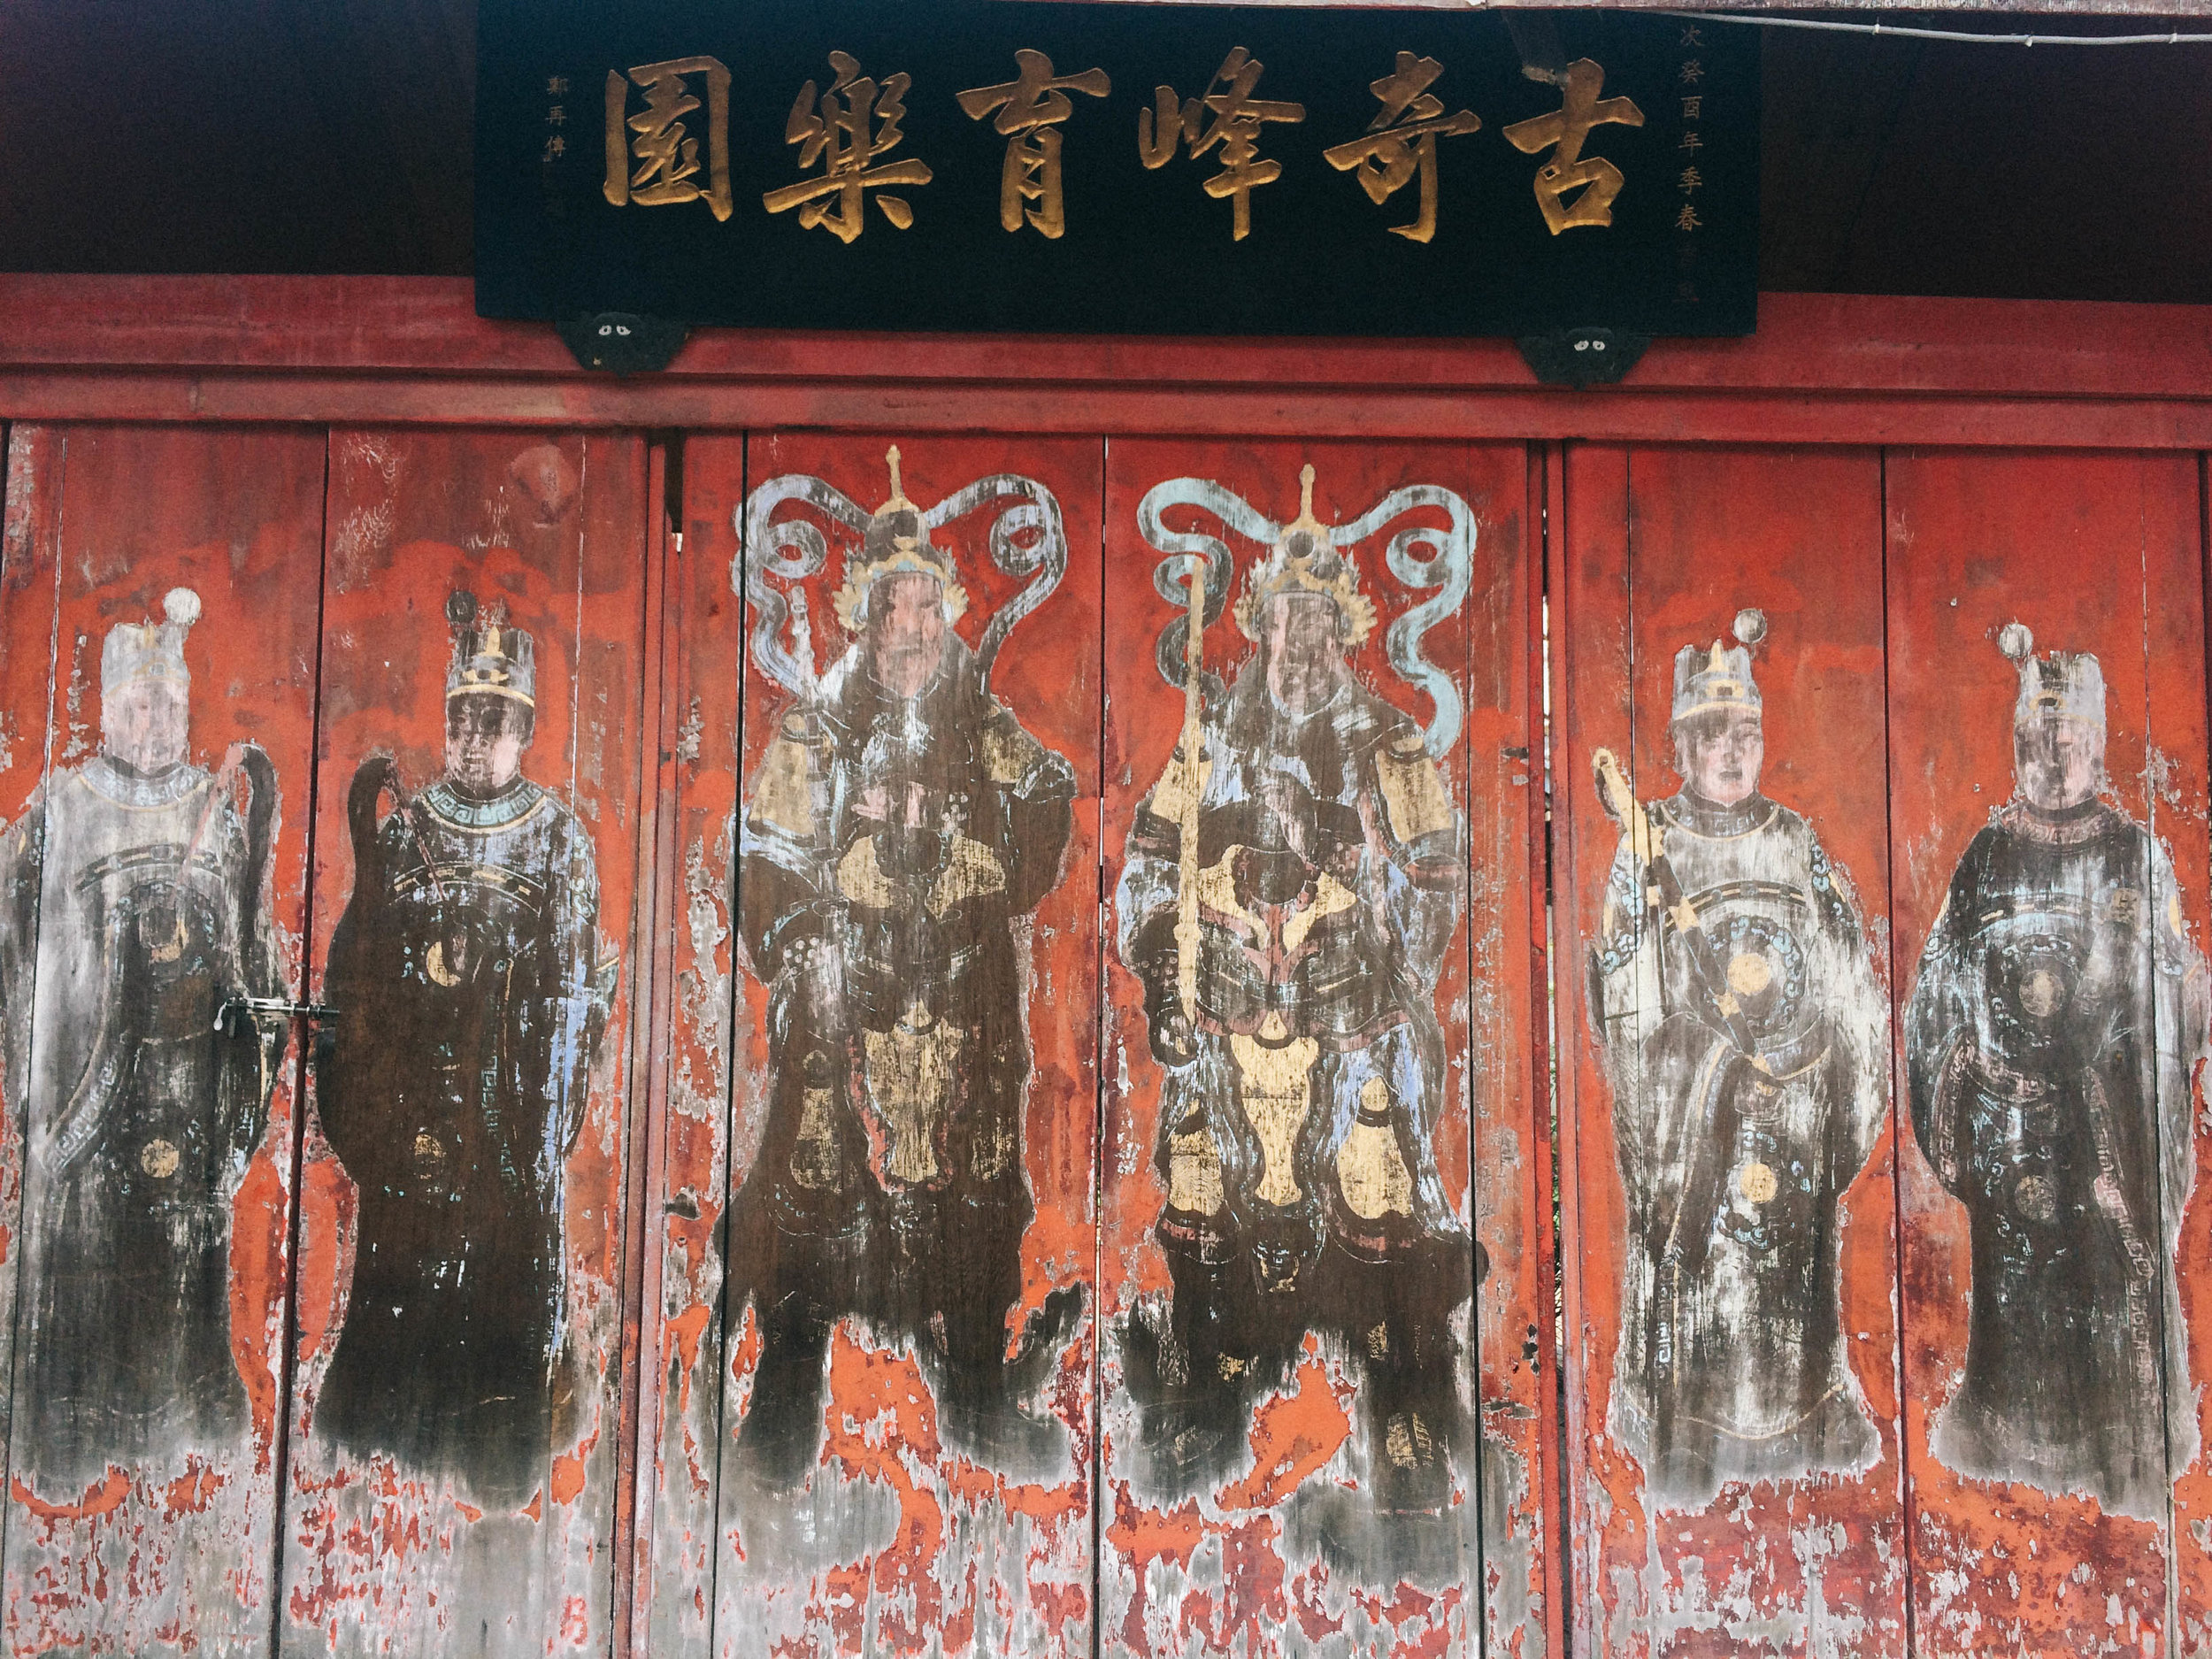 wall deco before entering pu tian temple site